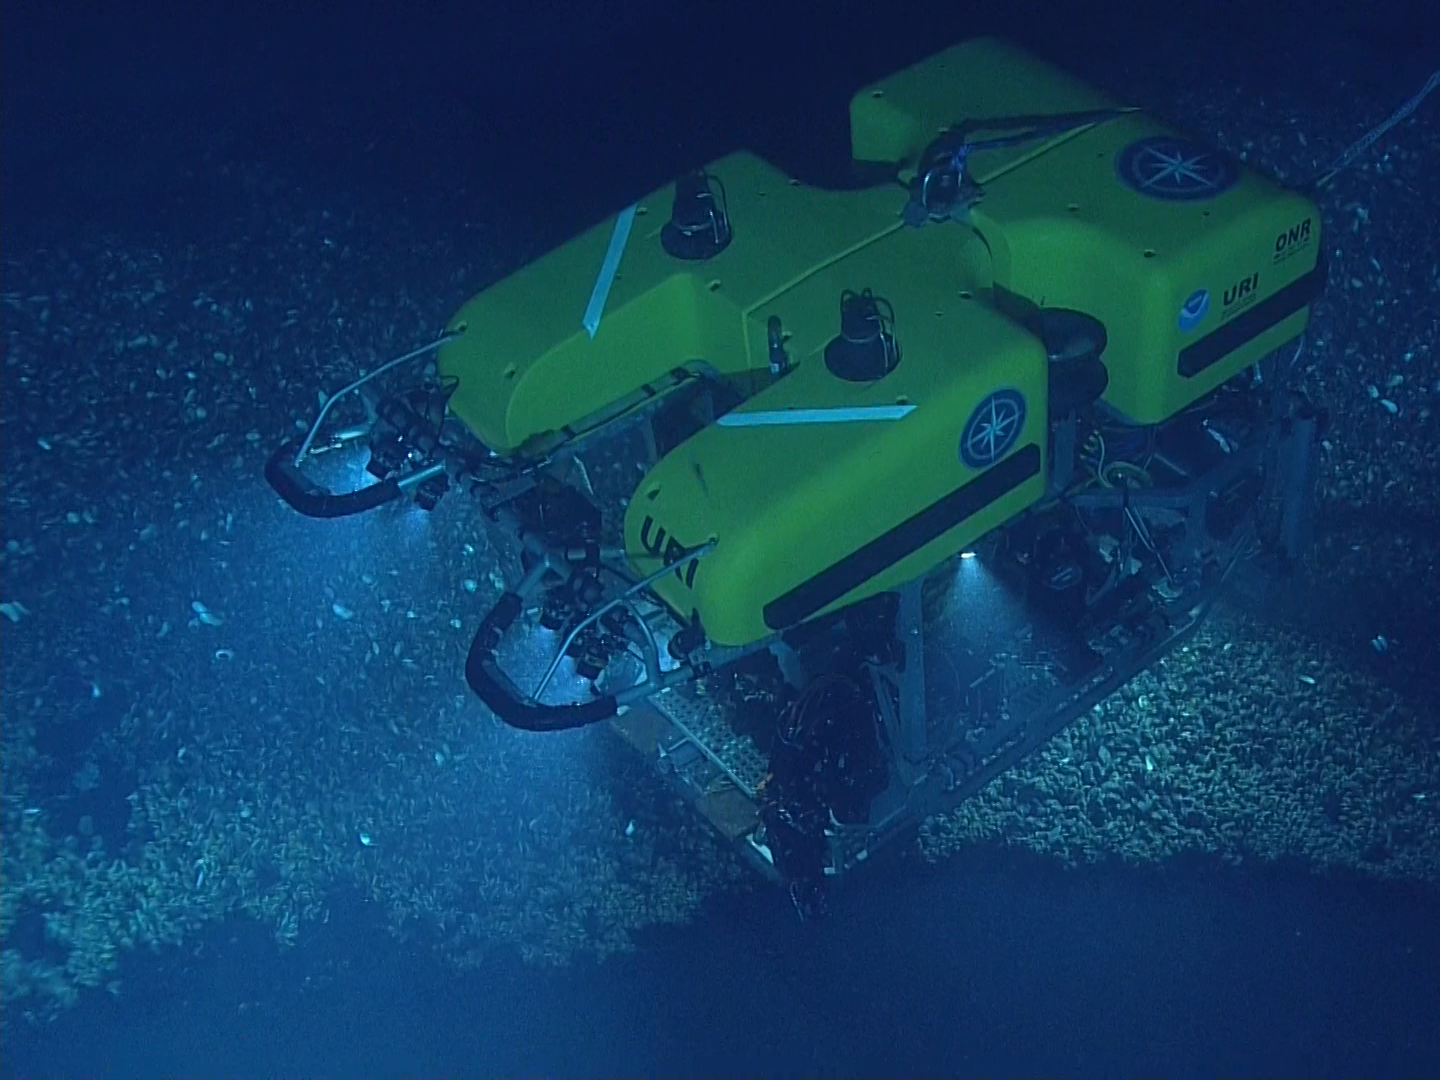 The remotely operated vehicle or ROV Hercules is able to explore down to a depth of 4,000 meters. It works in tandem with ROV Argus. Both are piloted from the control van, where members of the corps of exploration stand four-hour watches.